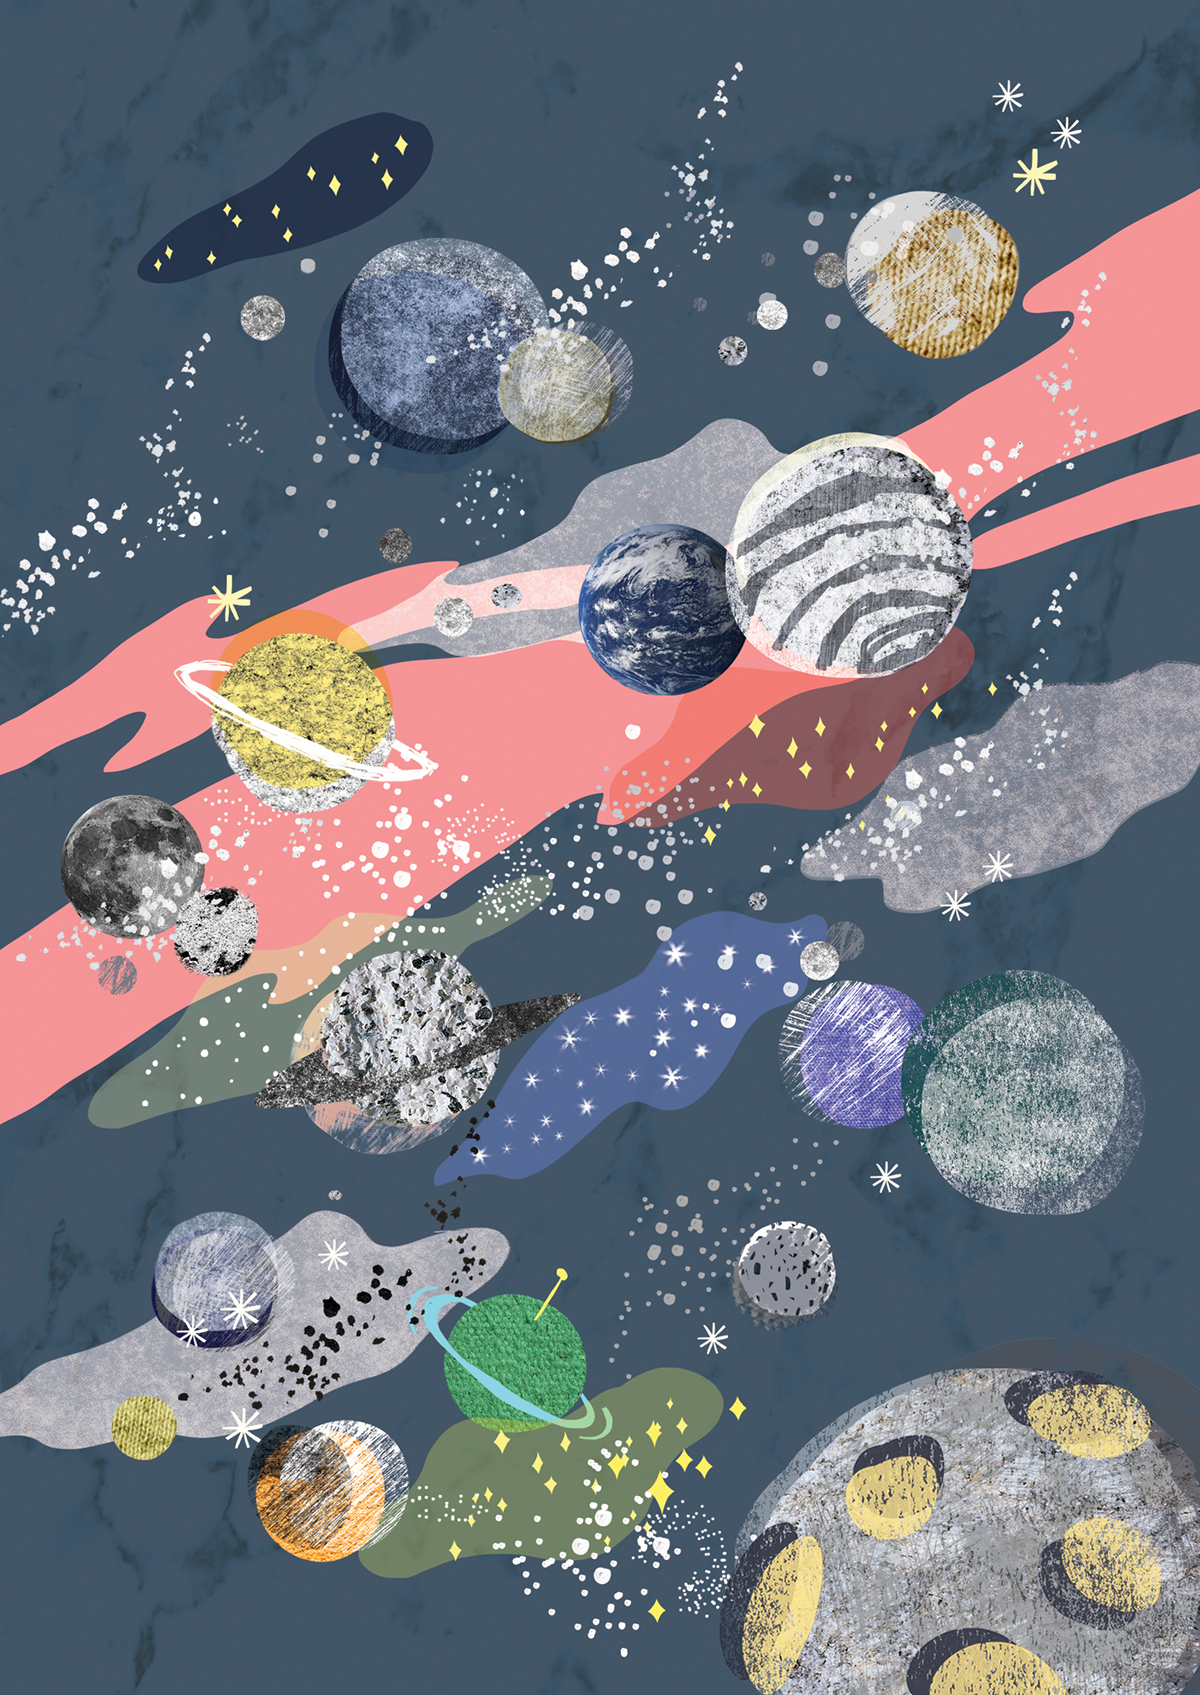 illustrations for essay book on behance i made few illustration works for the essay book which tells some stories about universe constellation and writer s experiences and so on